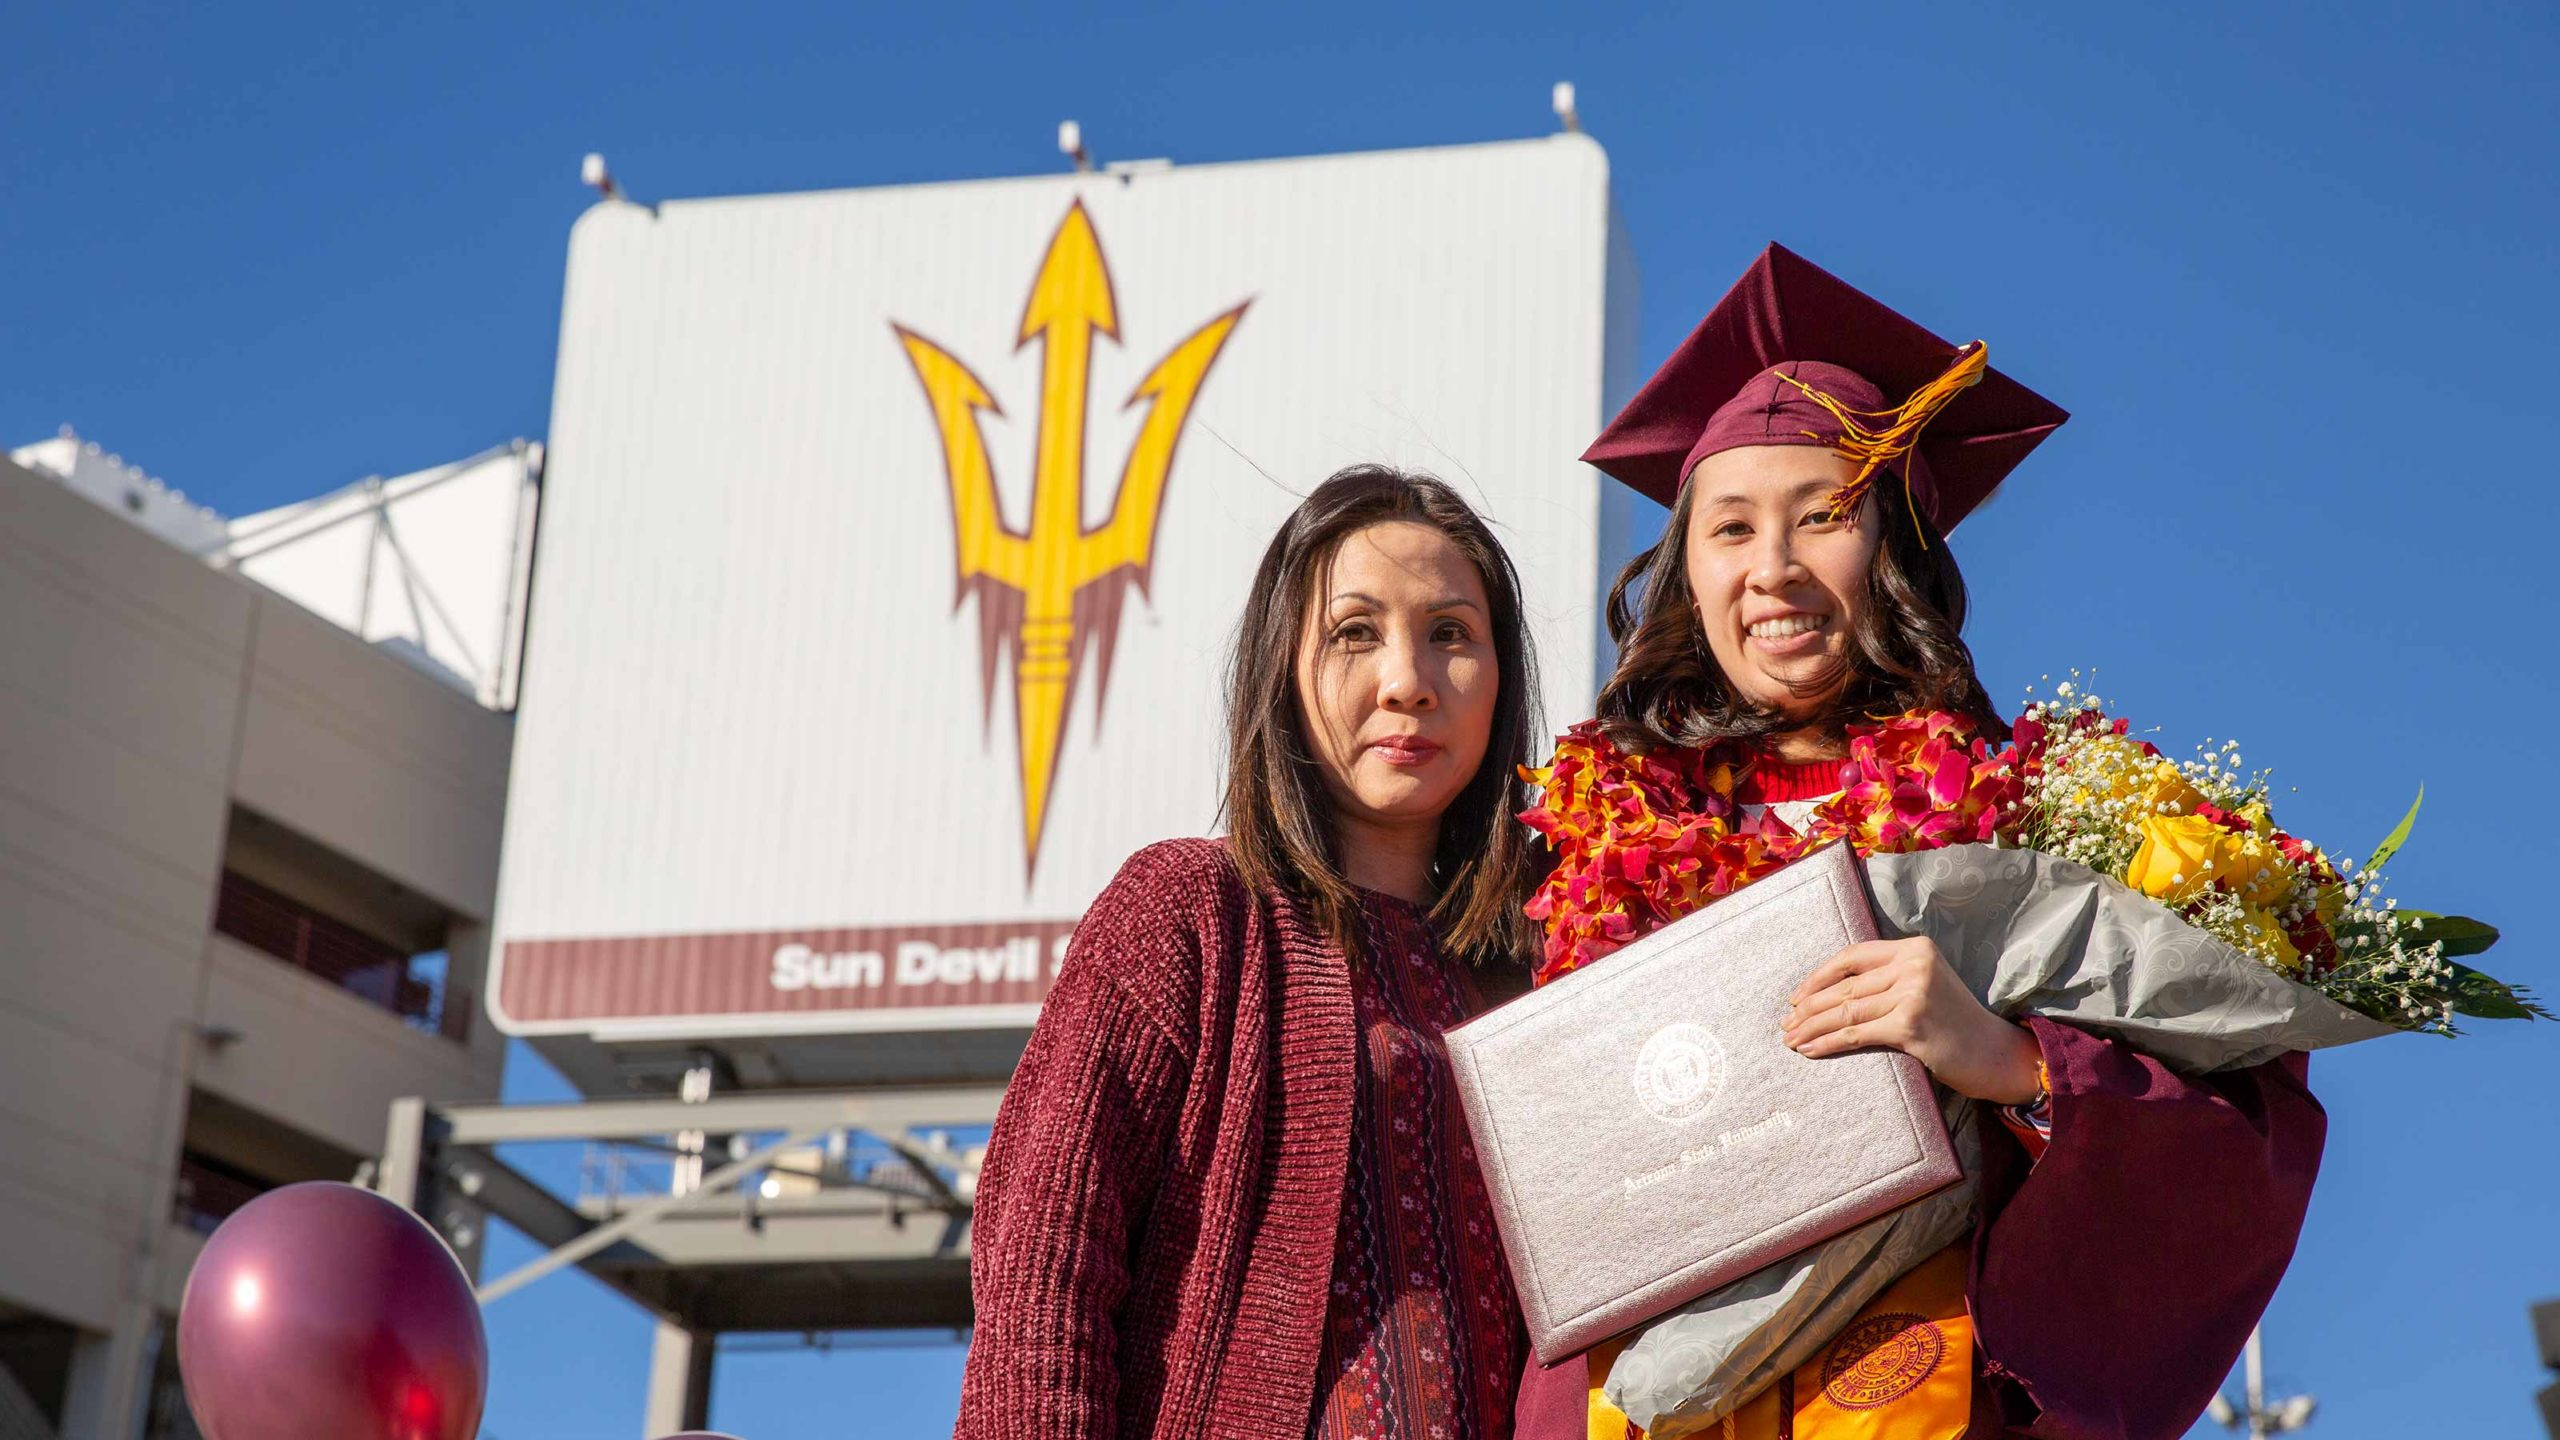 A graduate and her mother pose together for a Convocation photo, the woman in regalia, grinning, and the mother, emotional, slightly smiling